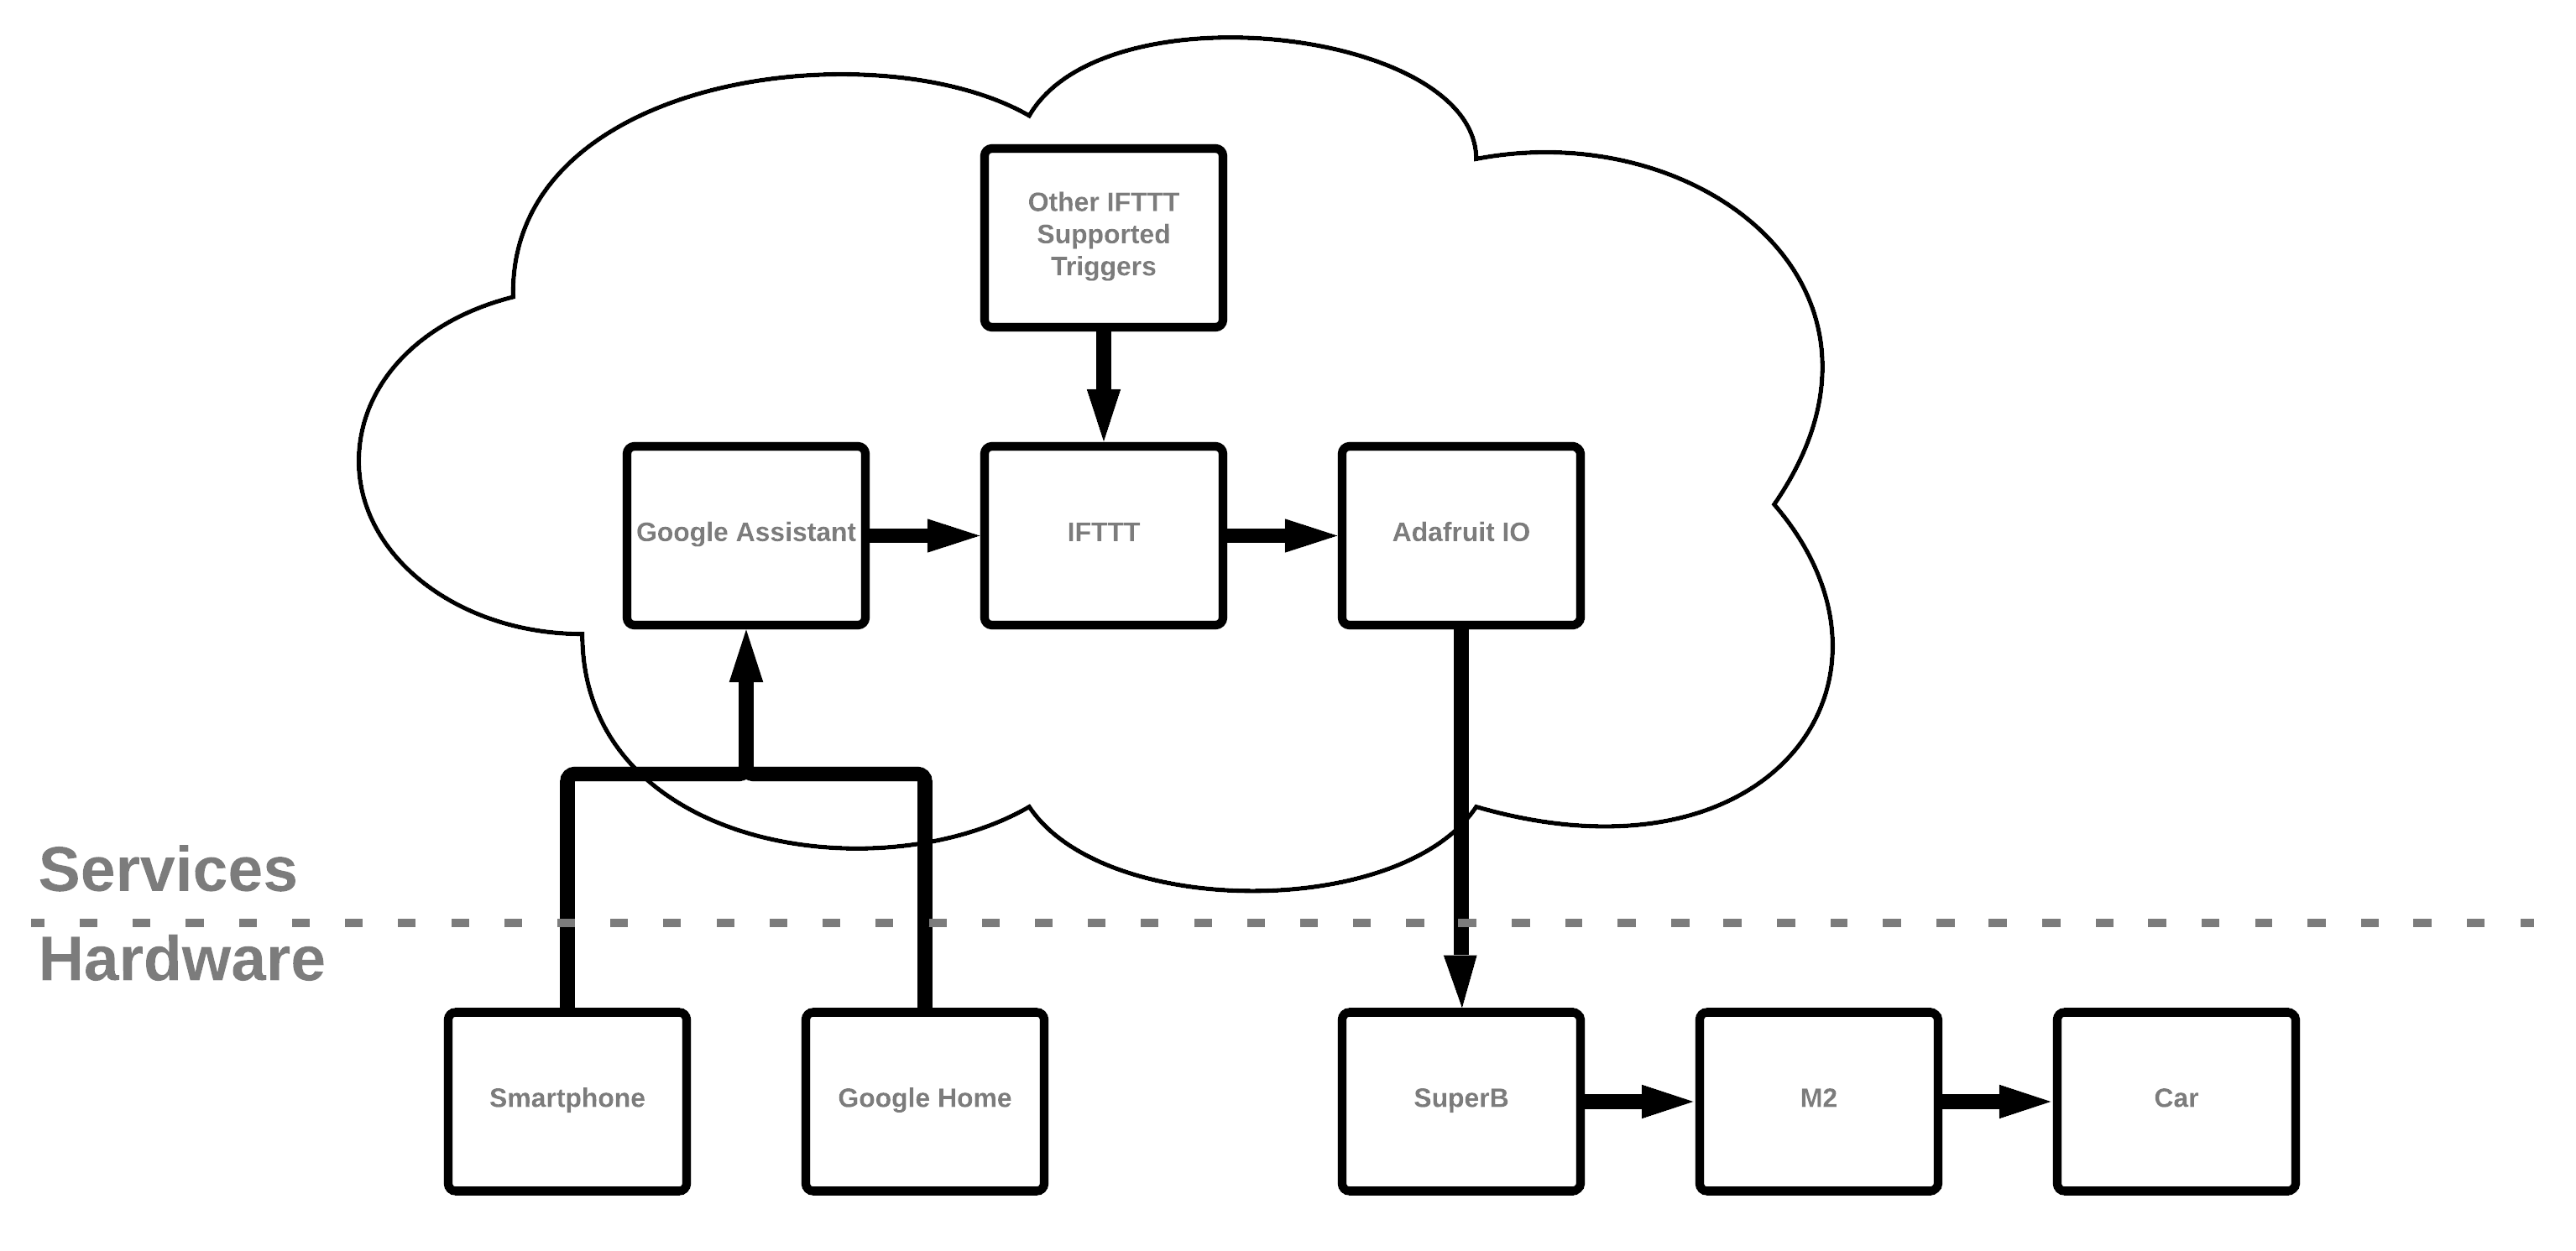 Flowchart showing the relationship between hardware and services used